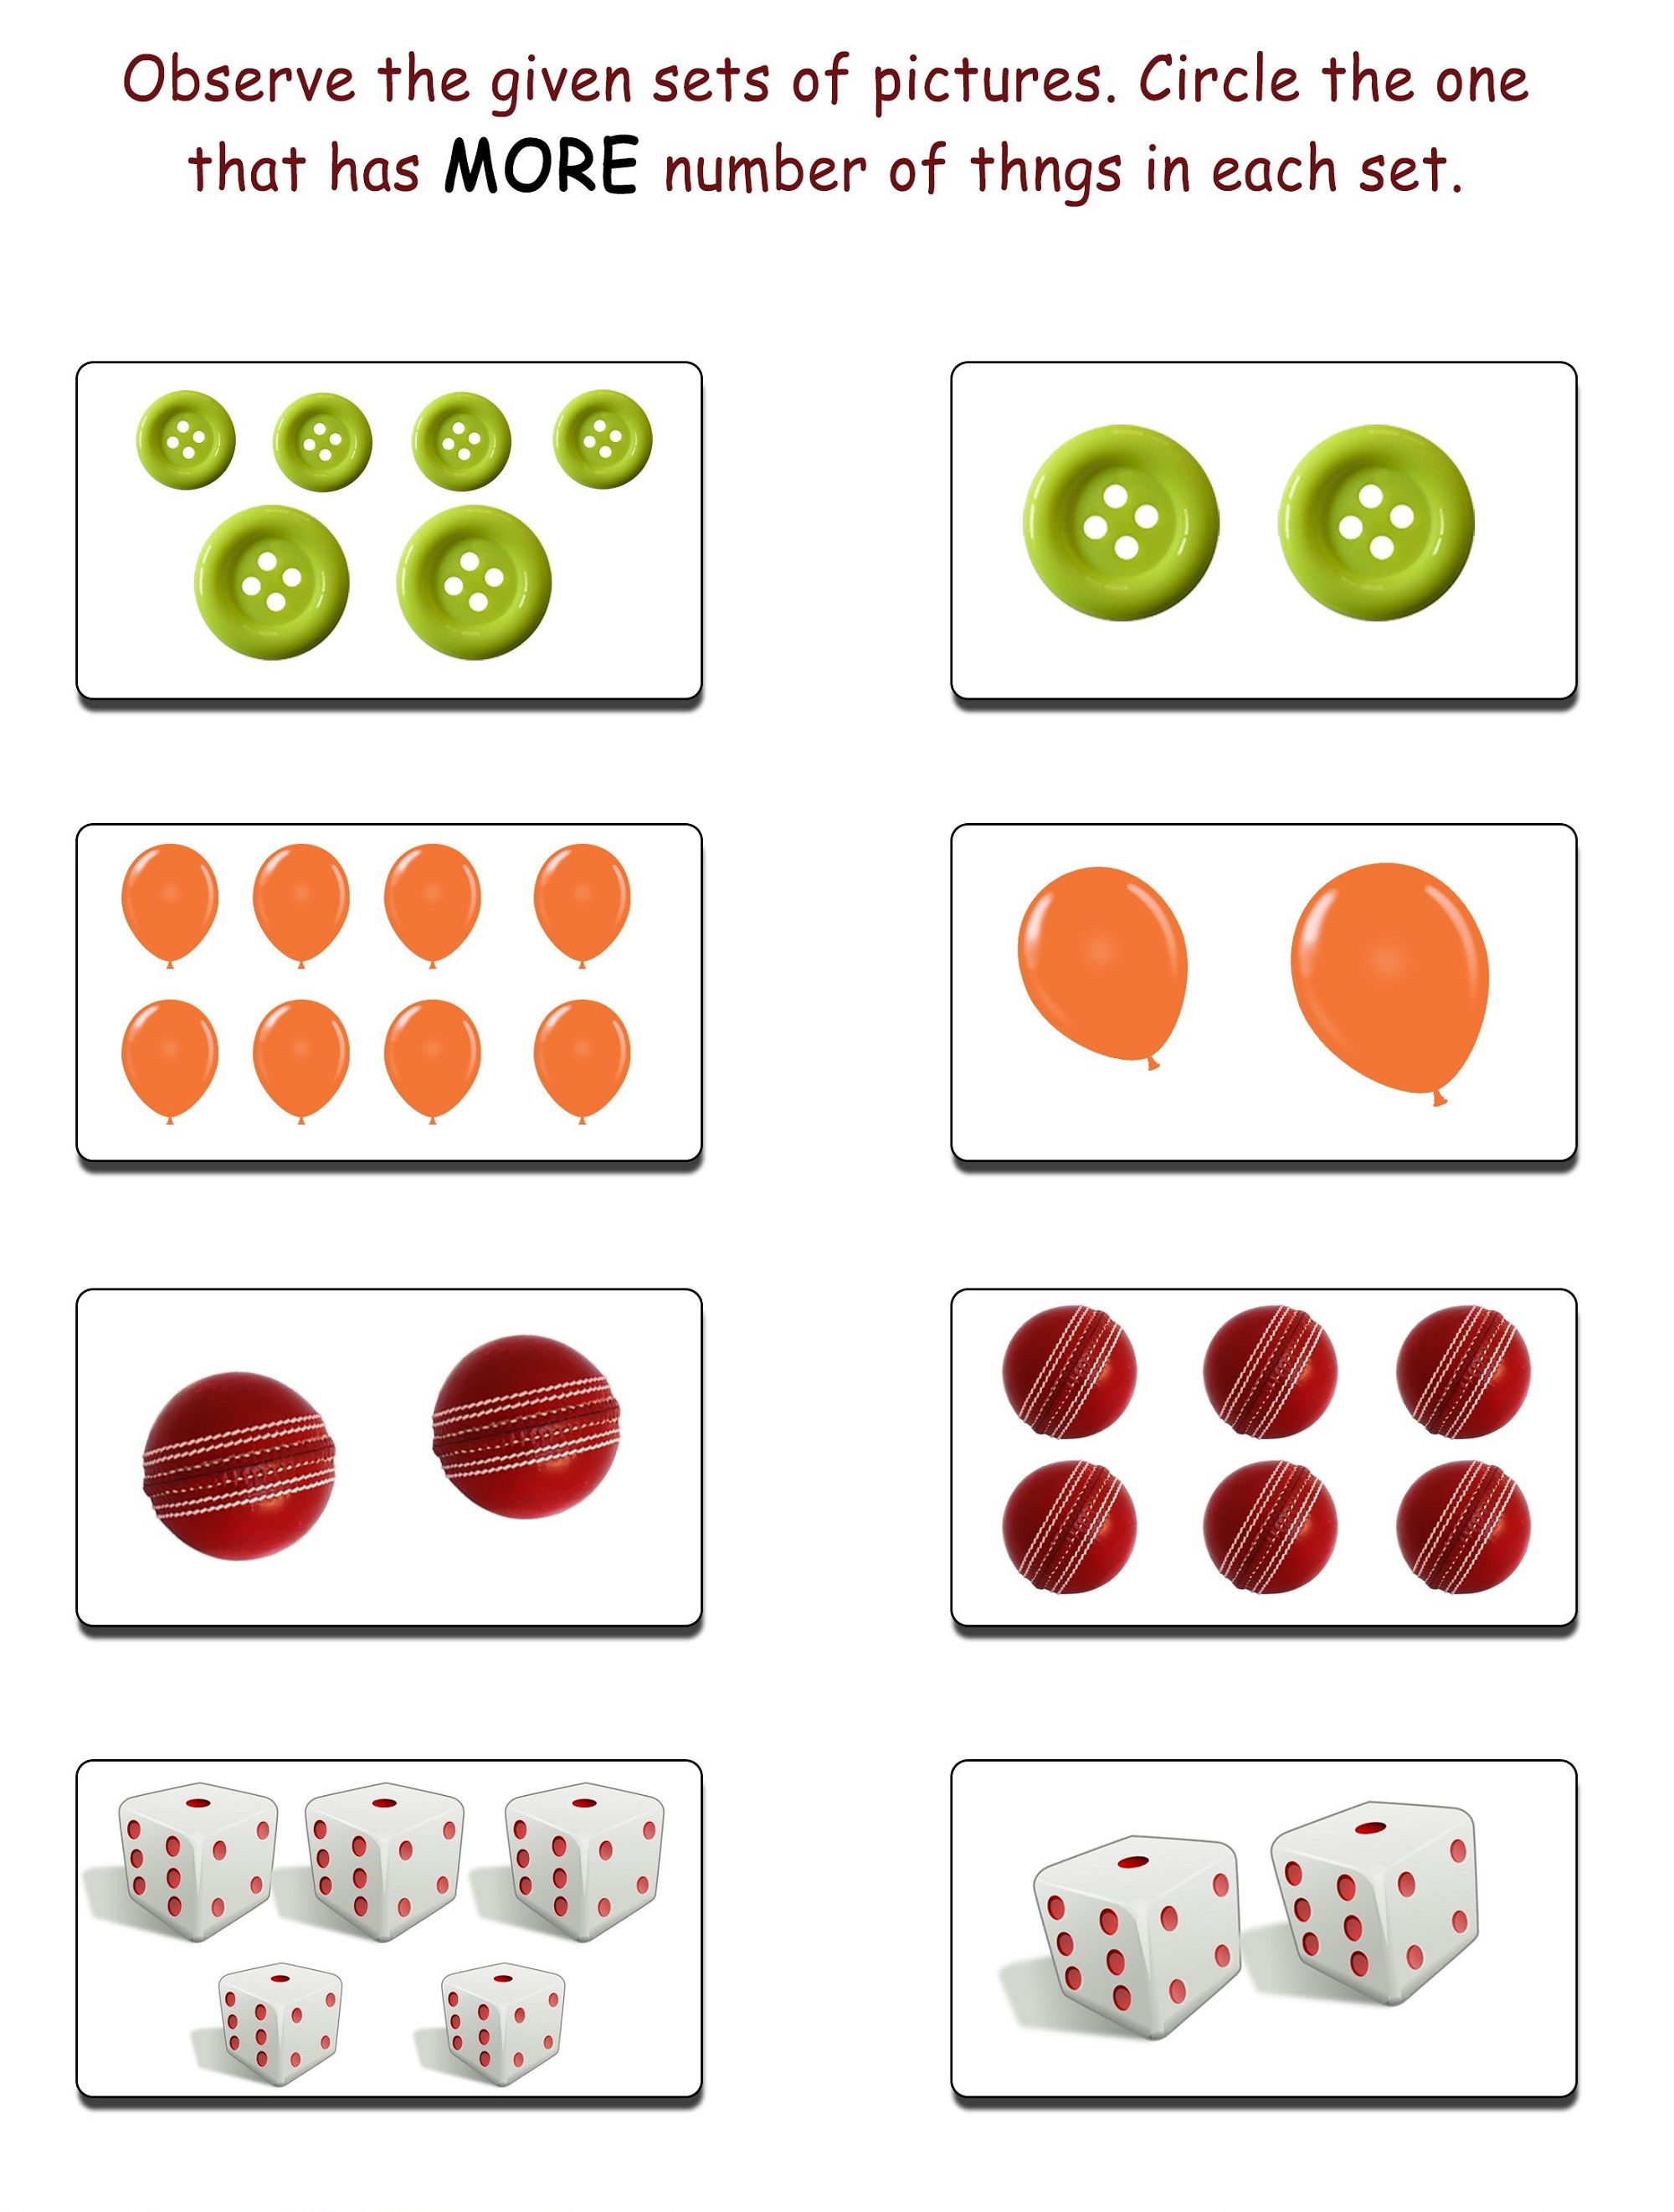 More And Less Worksheets Practice Using Worksheet To